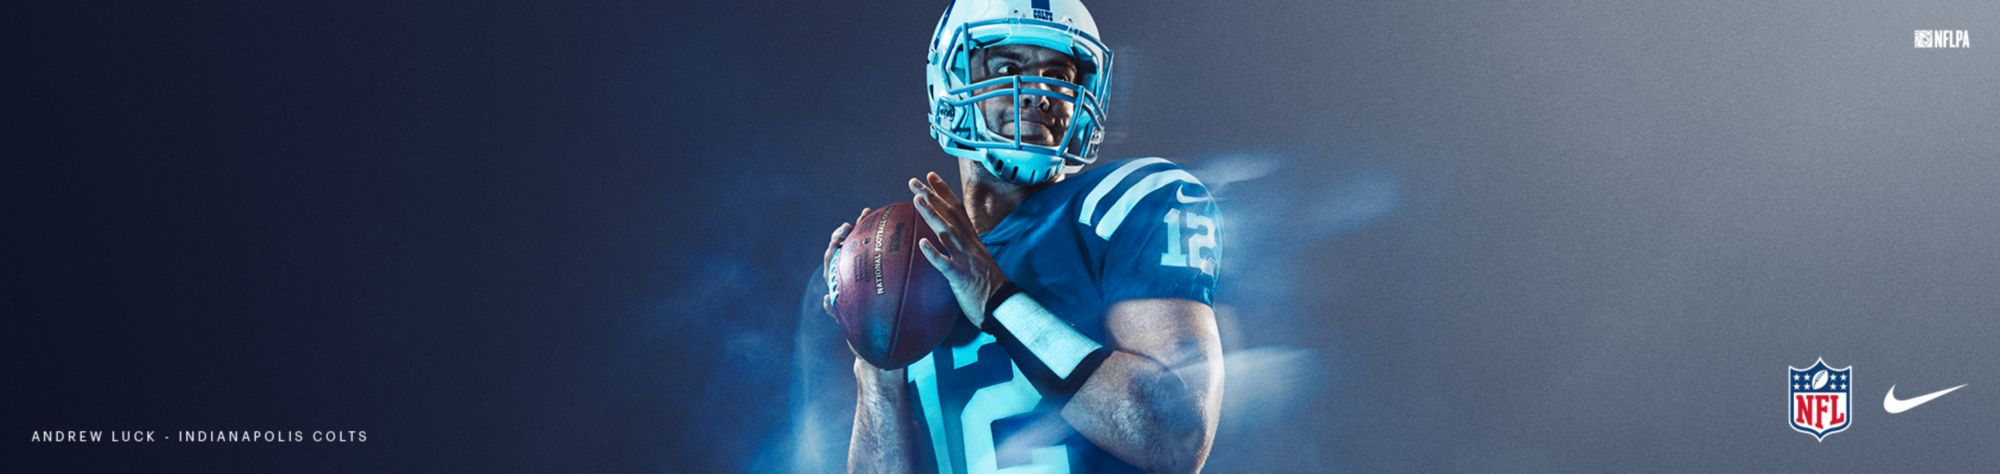 Color Rush Jerseys - Indianapollis Colts